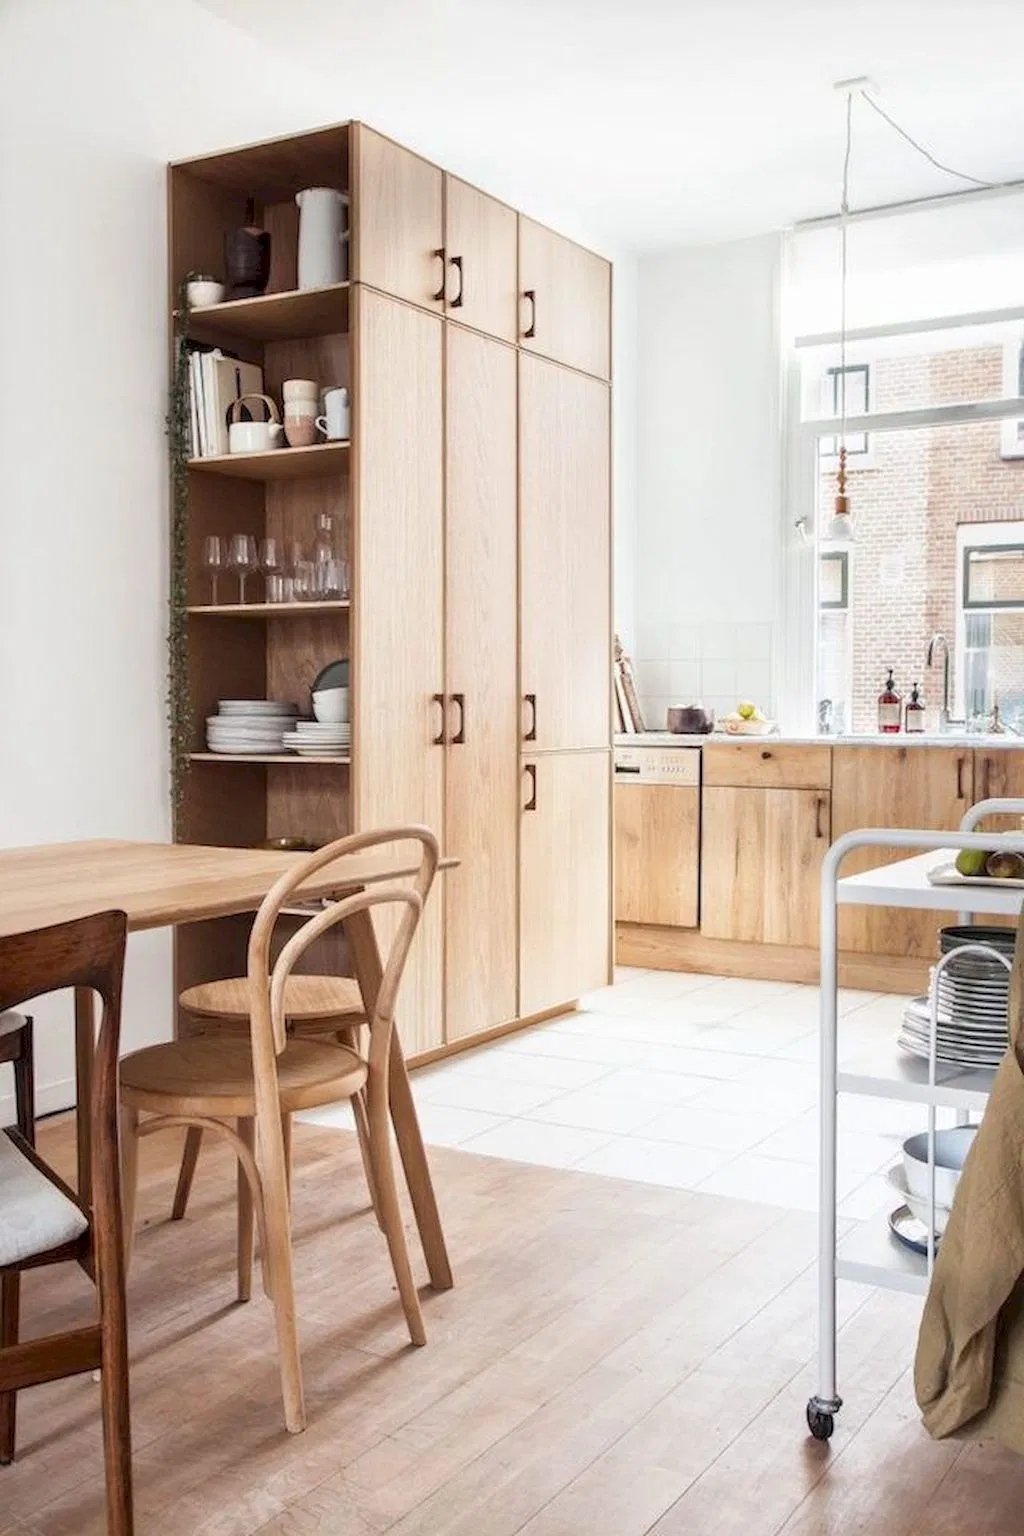 minimalist kitchen design with natural wood cabinets, wood floors and wood dining table